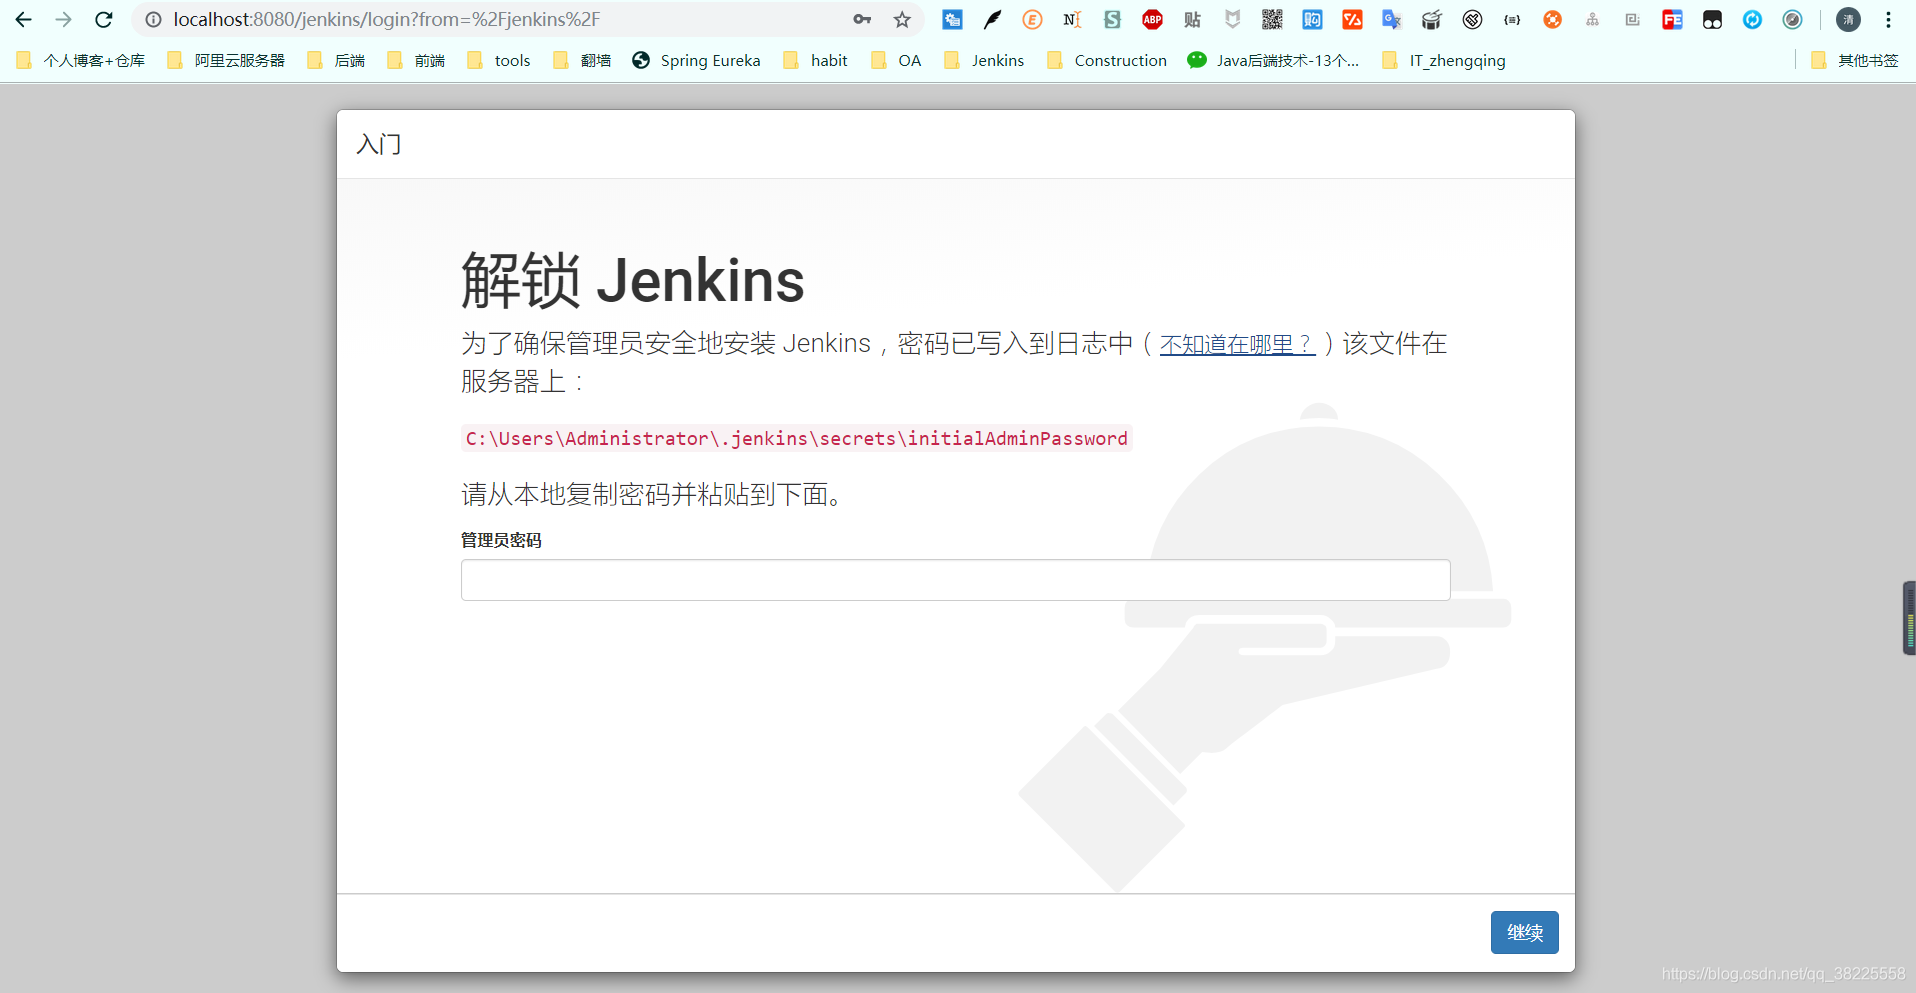 Jenkins Continuous Integration (II)] Installing Jenkins tutorial on